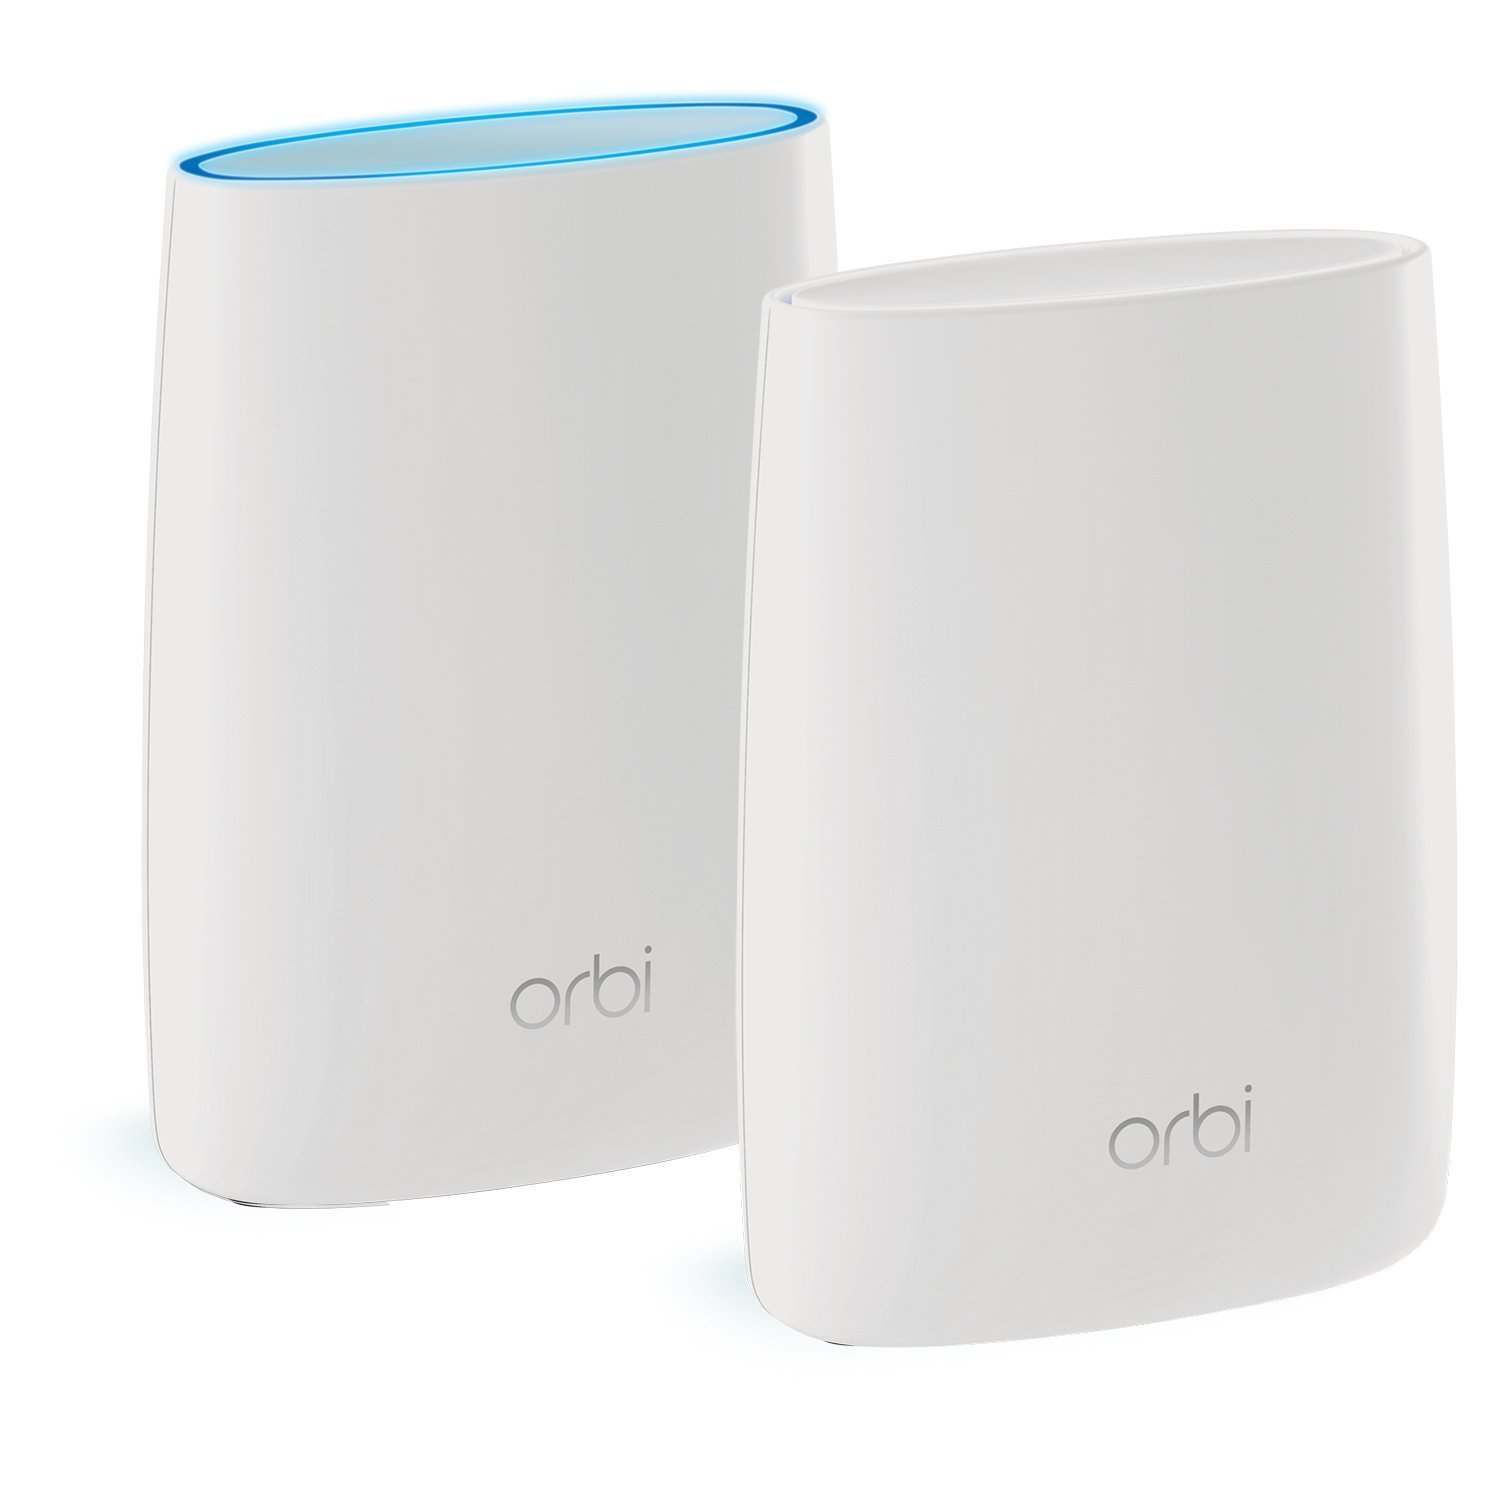 The NETGEAR Orbi is also highly recommended.